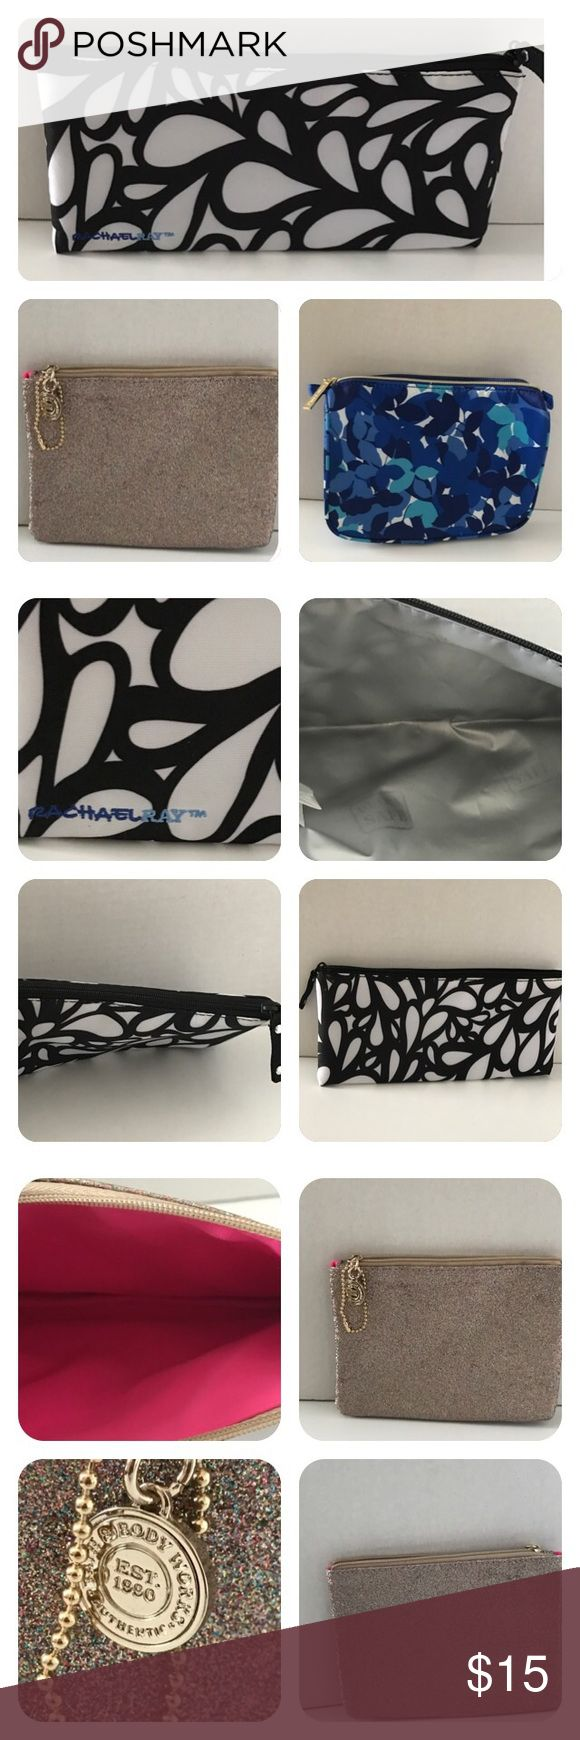 Cosmetic Bag Bundle Rachel Ray insulted Bag. Black and